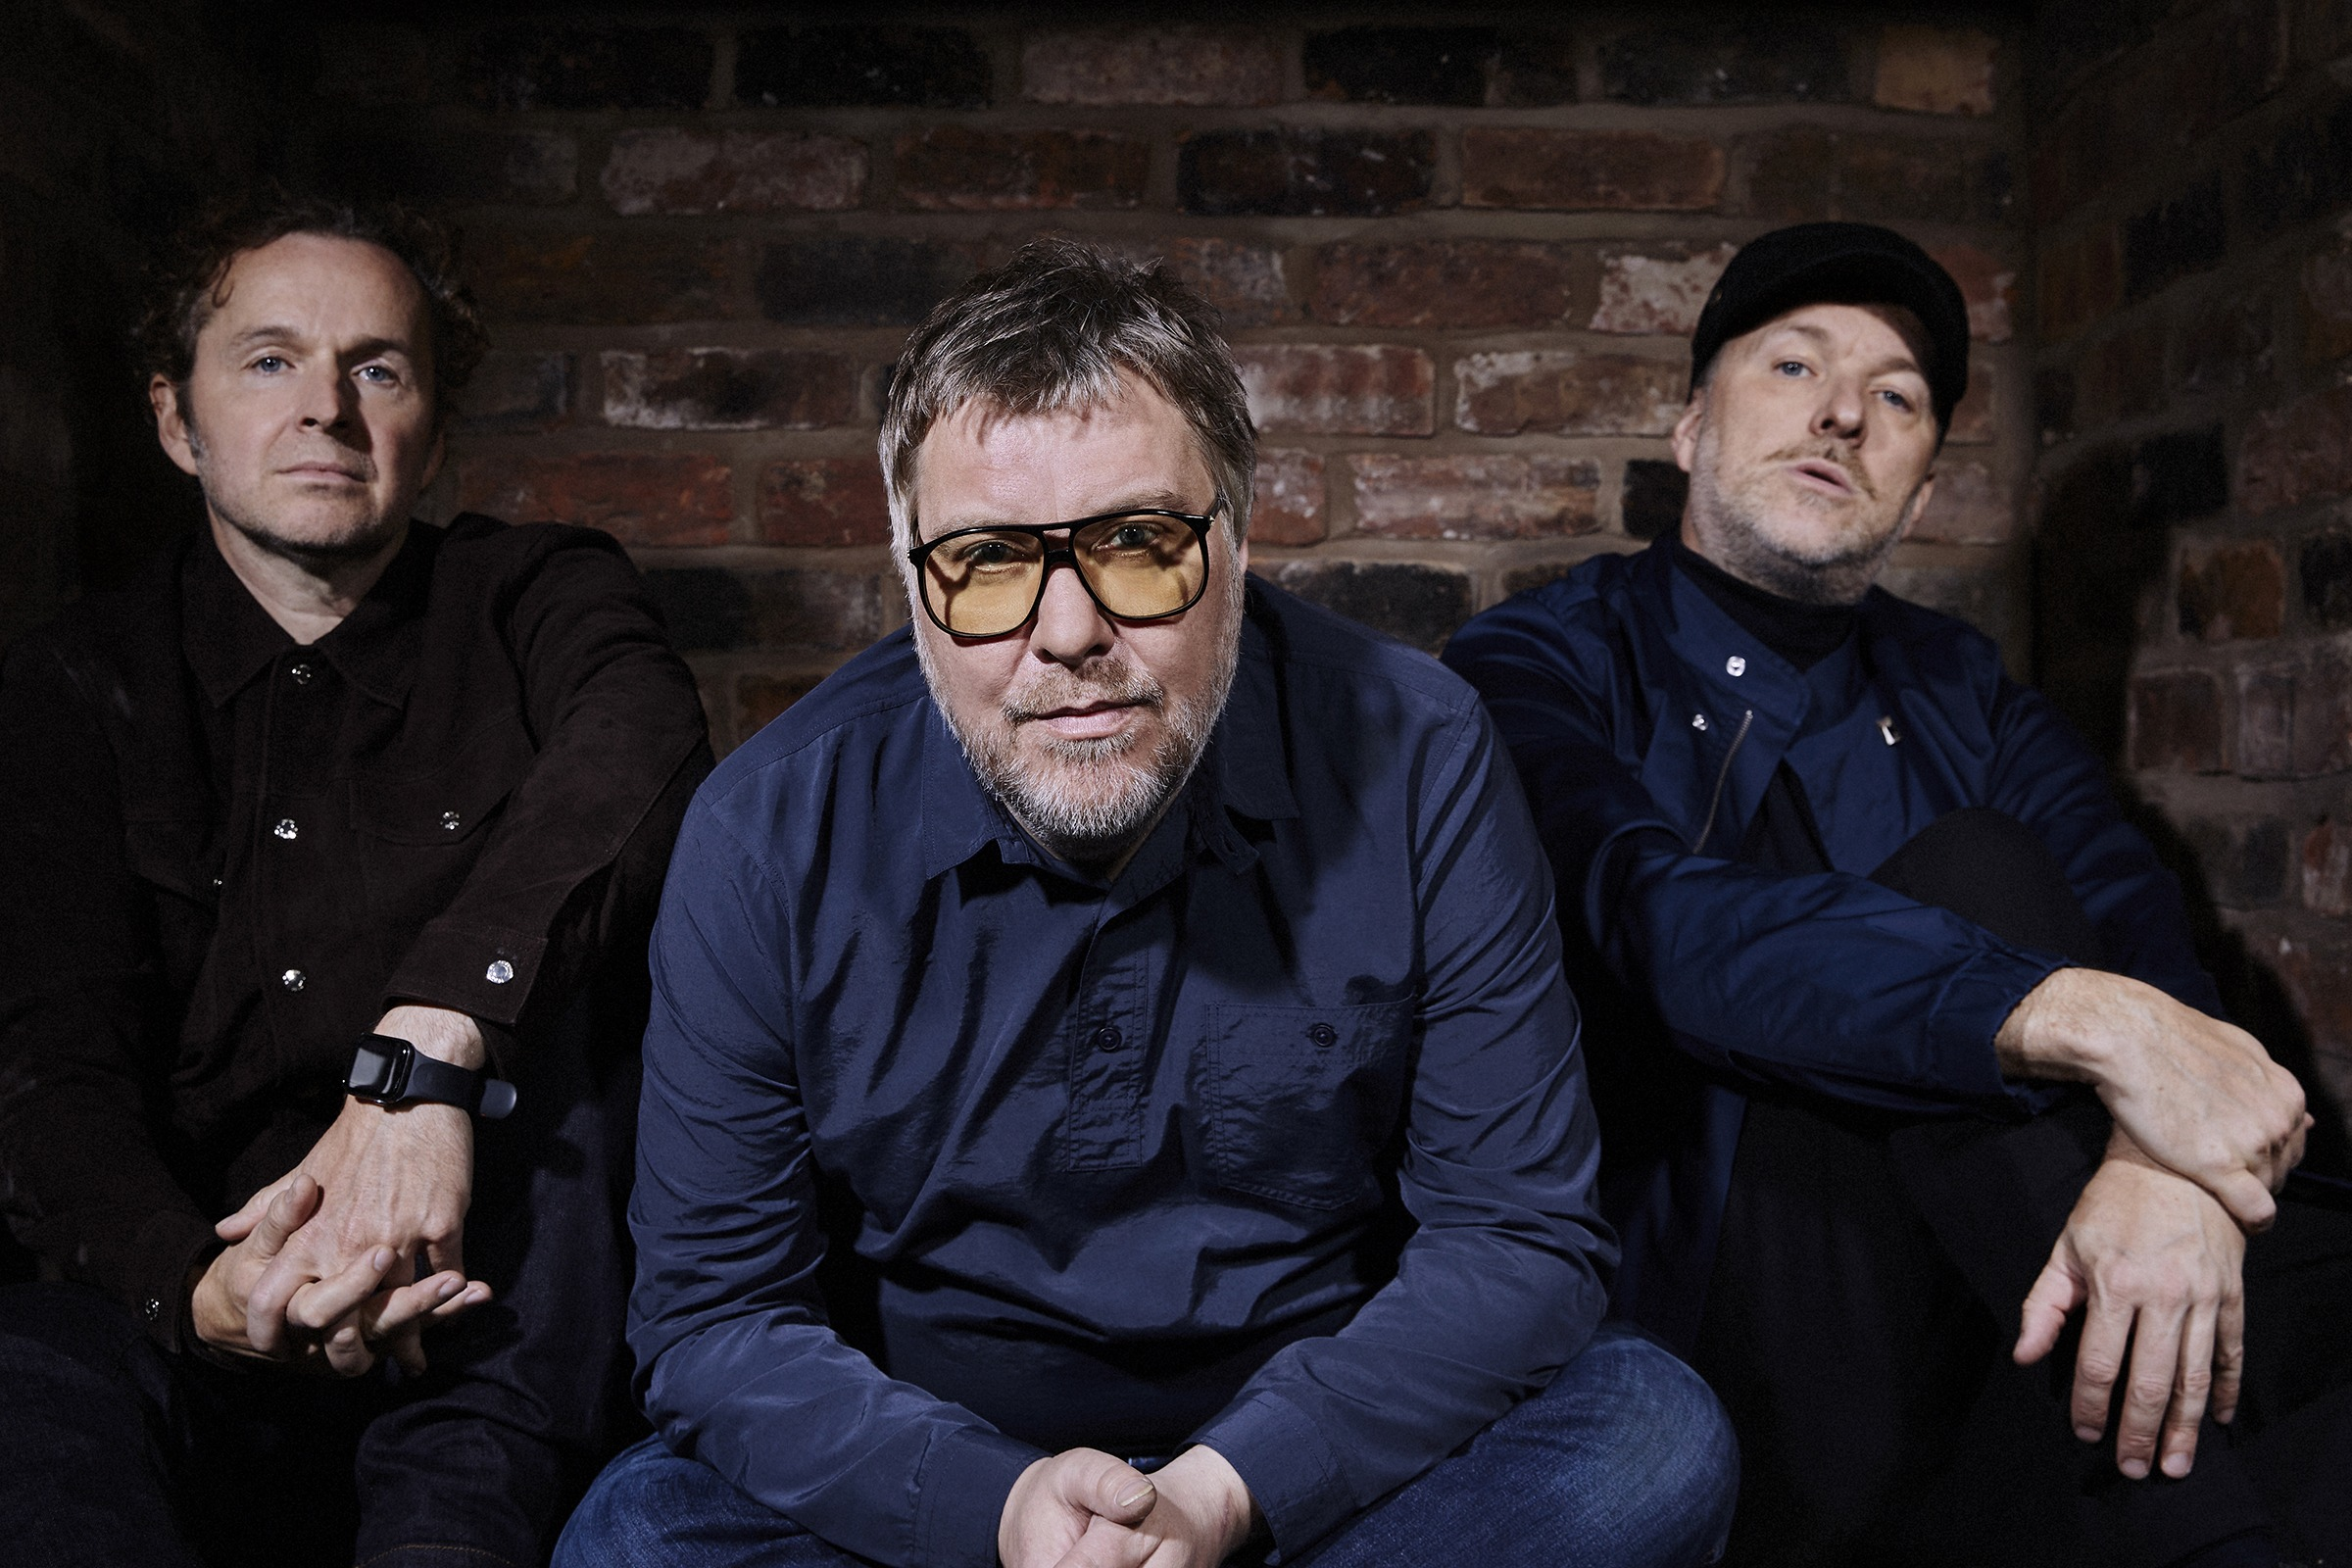 Doves Andy Williams xs noize interview